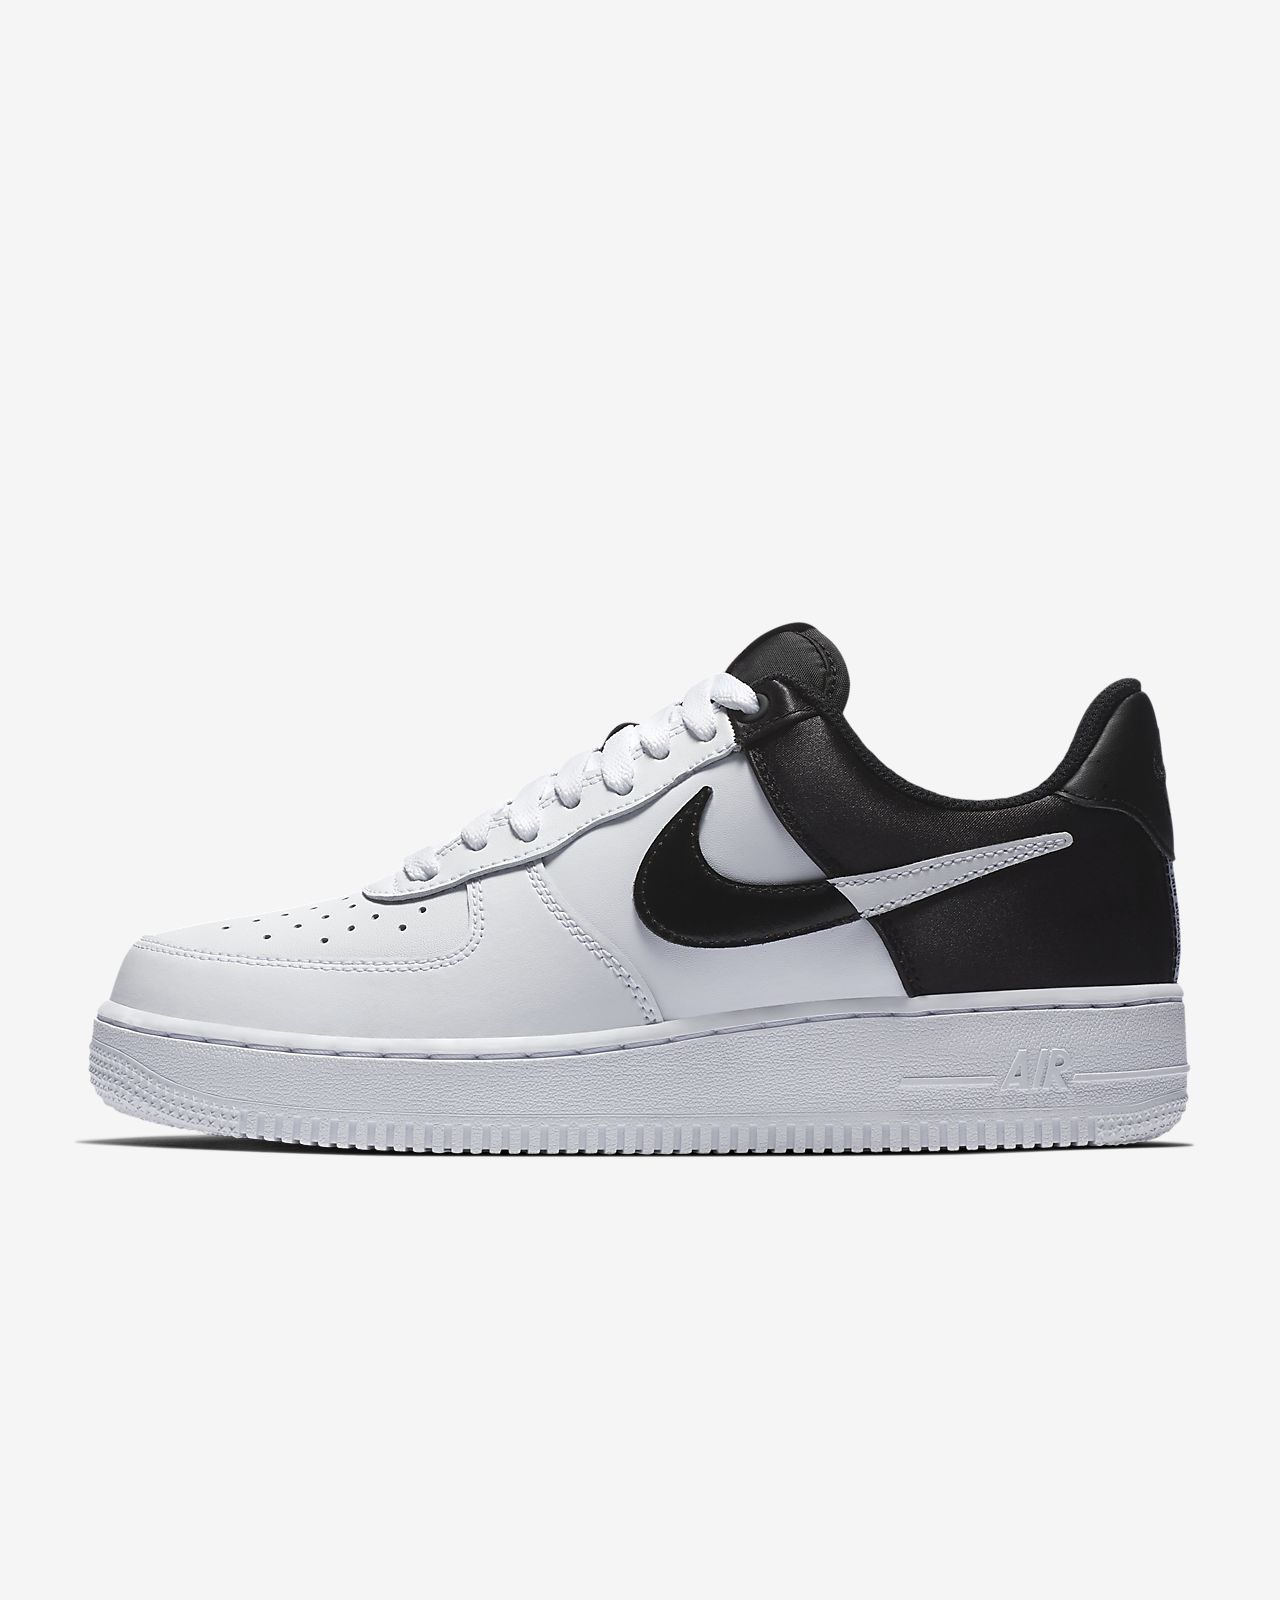 NIKE Nike air force 1 sneakers men AIR FORCE 1 07 LV8 1 white white BQ4420 100